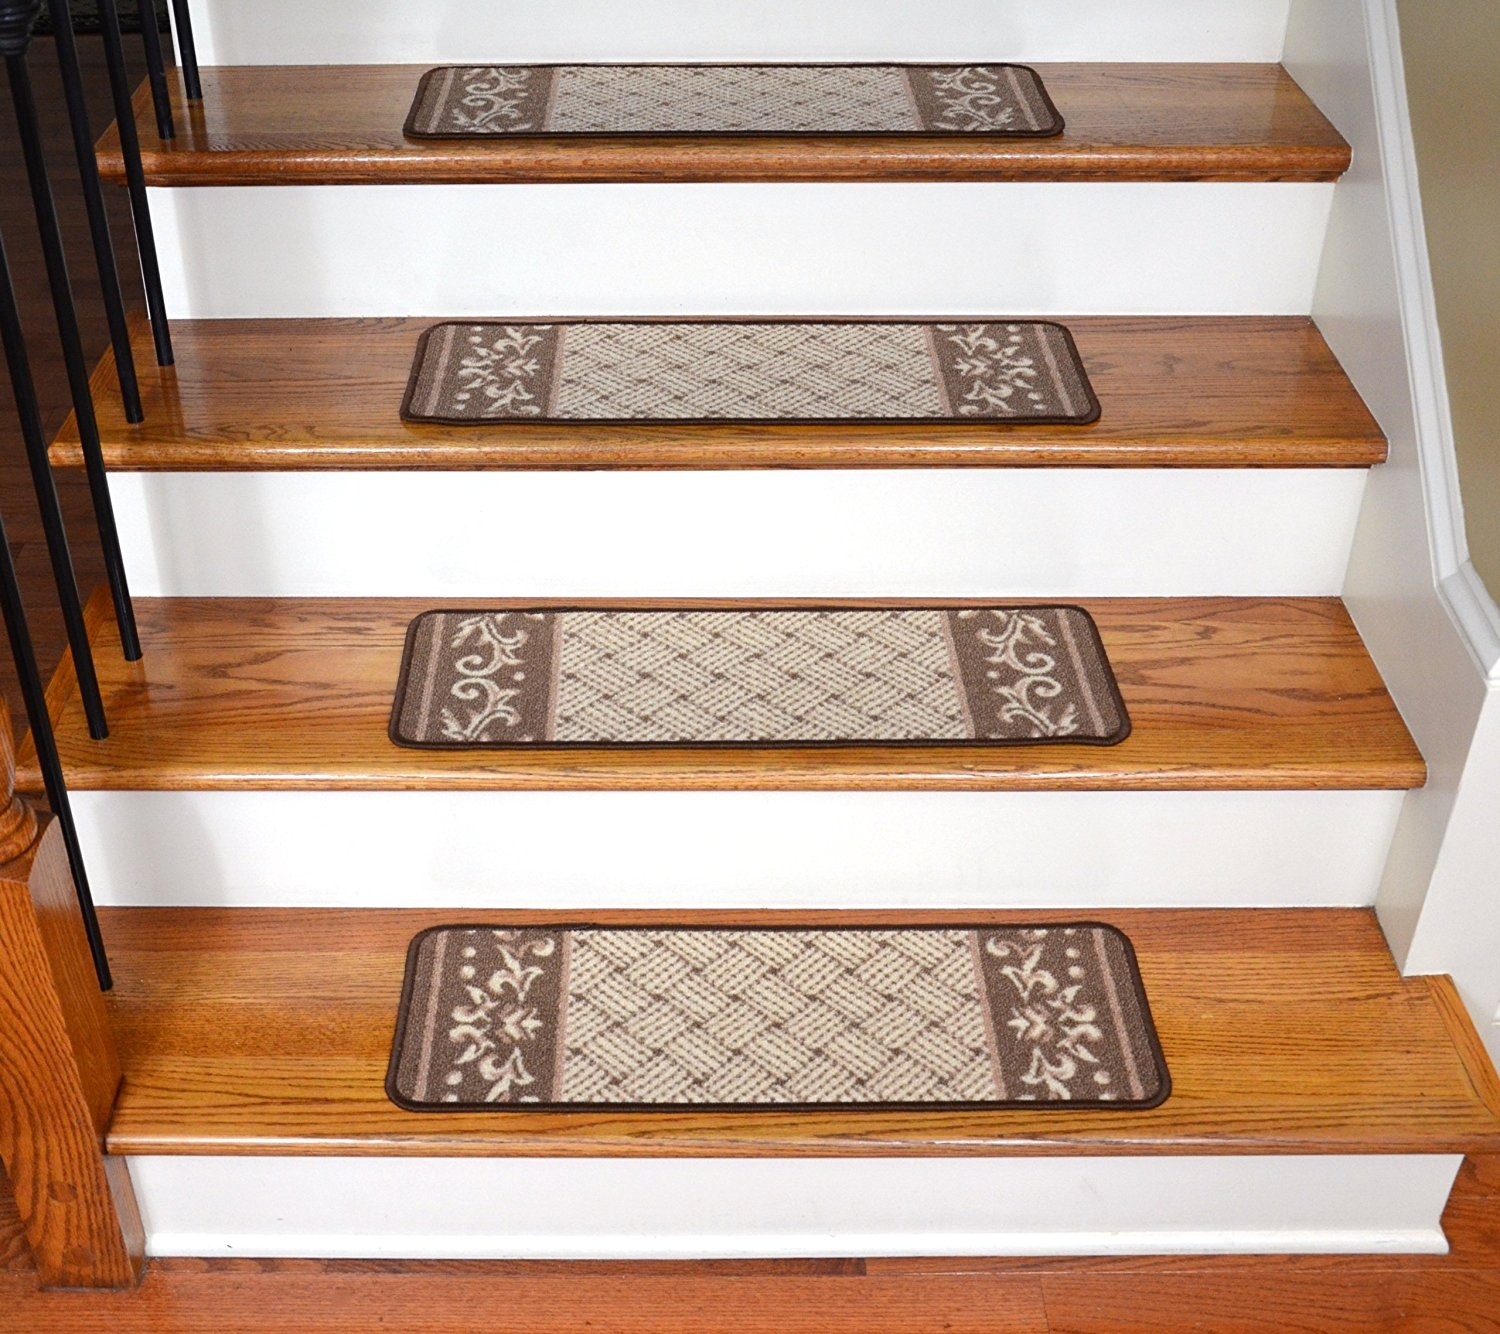 Amazon Carpet Stair Treads Caramel Scroll Border Regarding Stair Treads And Matching Rugs (View 5 of 15)